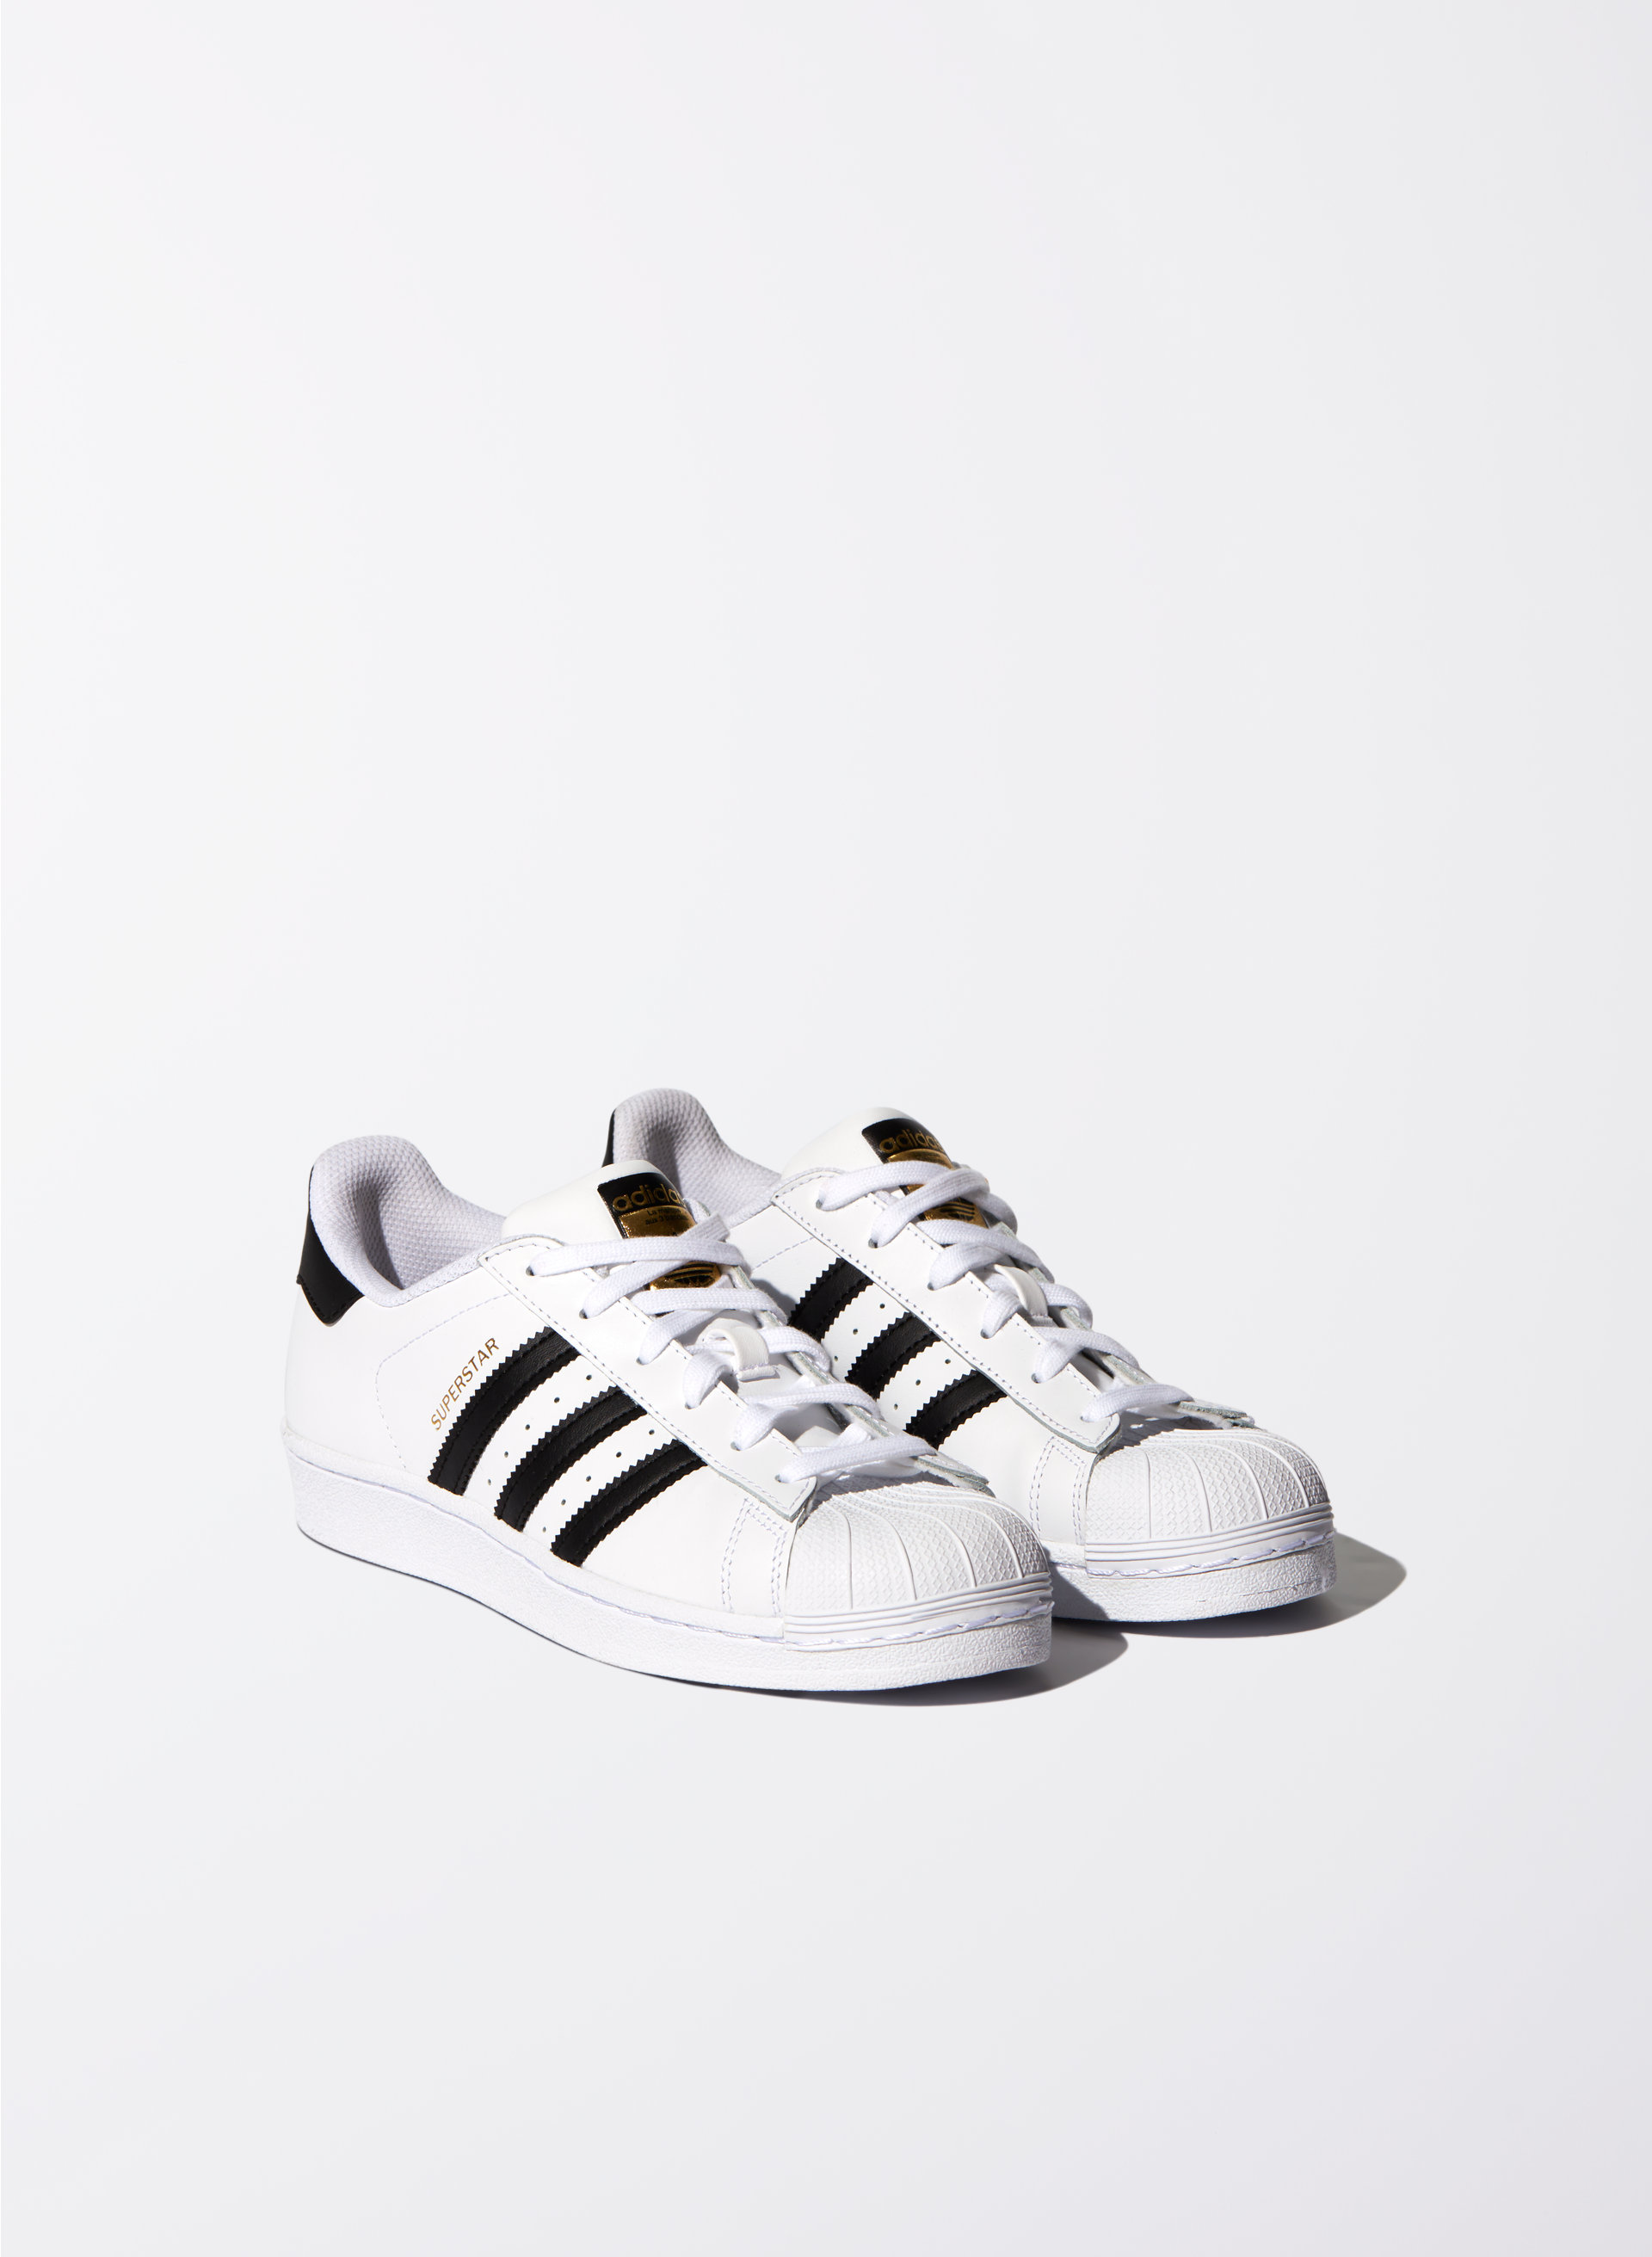 Cheap Adidas Originals Superstar Women's JD Sports rose gold kicks